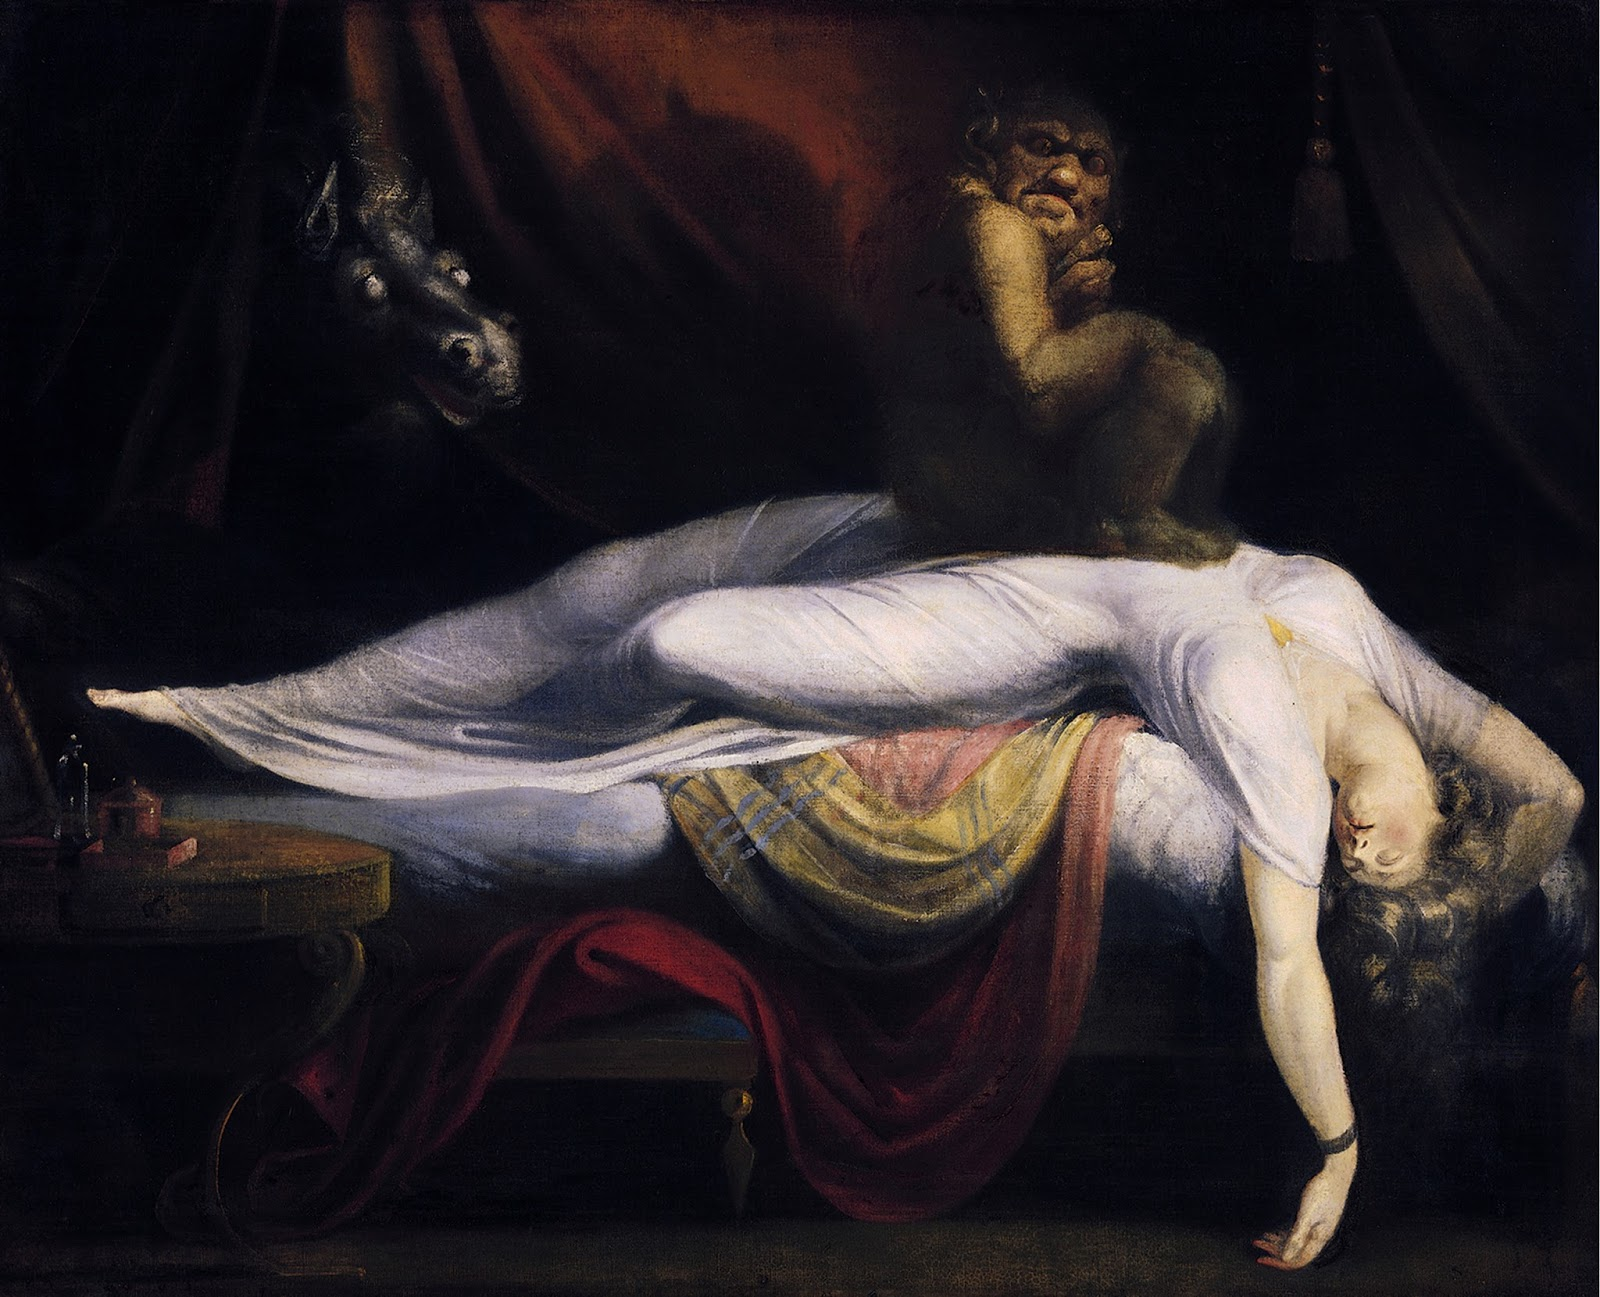 A Jungian Perspective on Nightmares and Bad Dreams